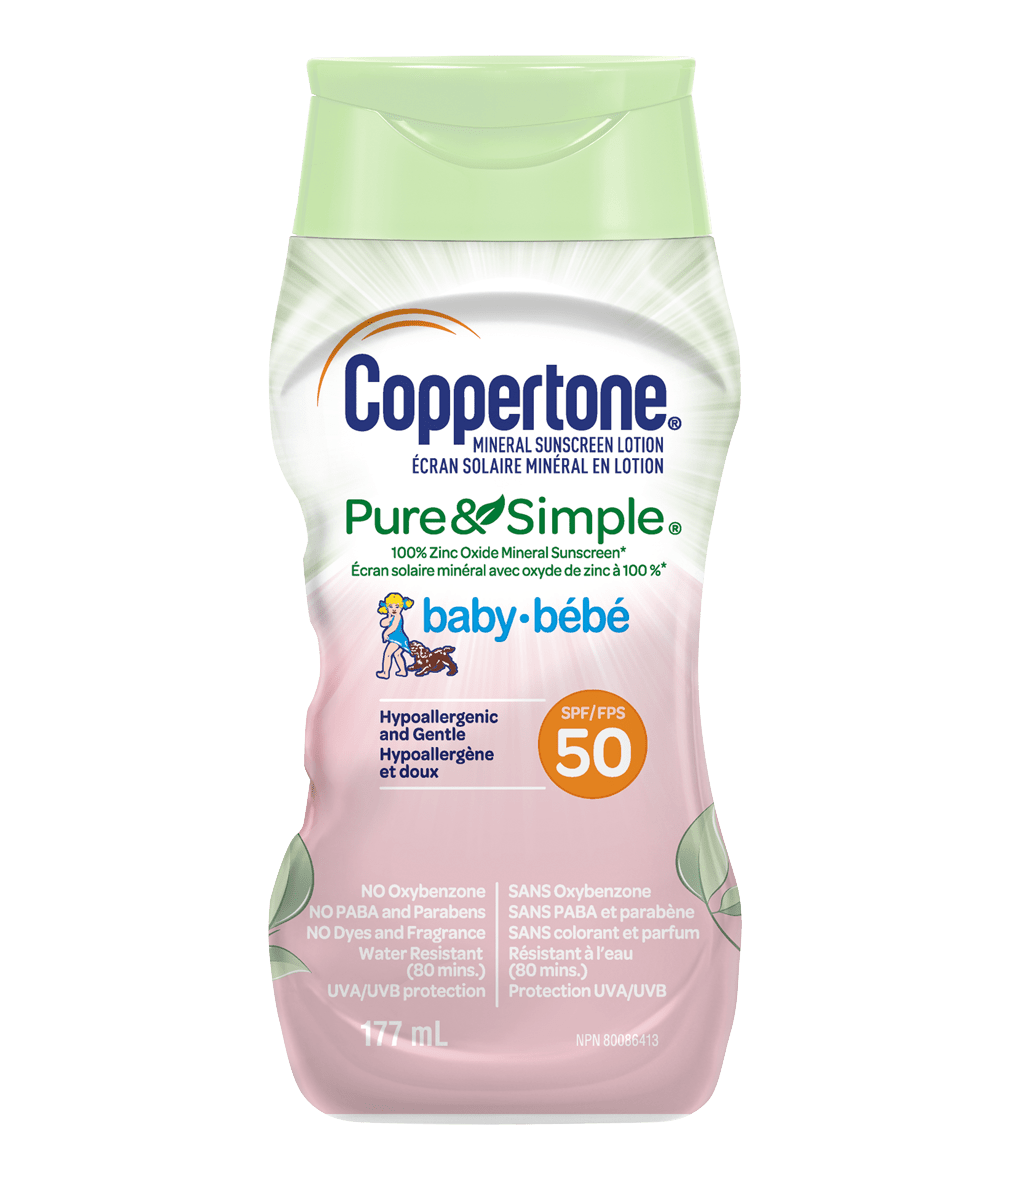 Coppertone_Pure and Simple_Baby_SPF50_177ml_Shrinkshleve_Bilingual_FOP_08_2020